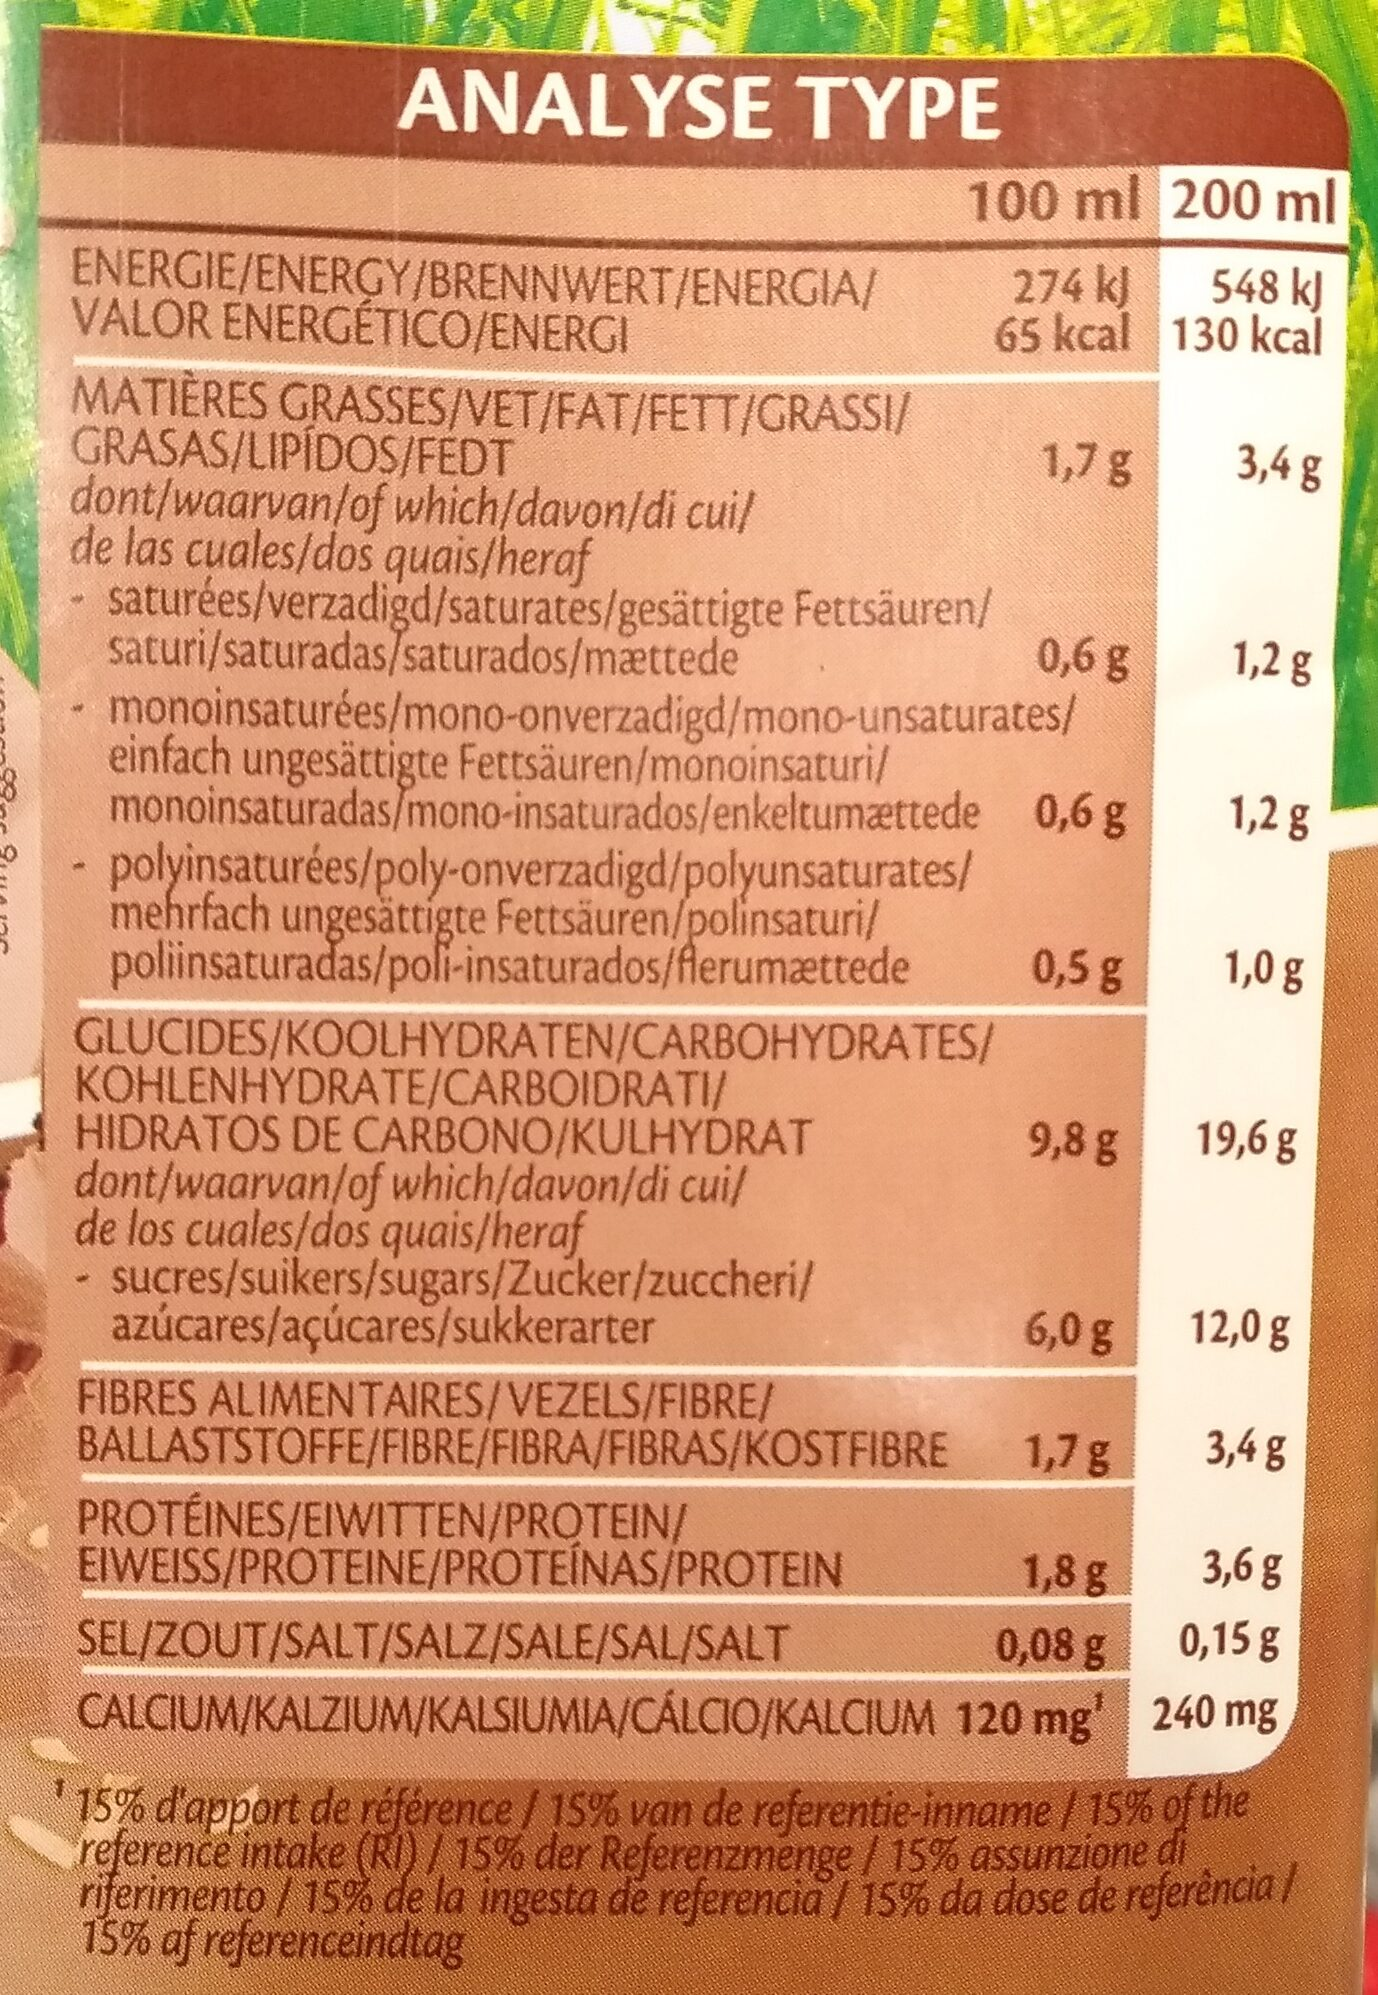 Rice drink choco à base de riz au soja et cacao - Nutrition facts - fr